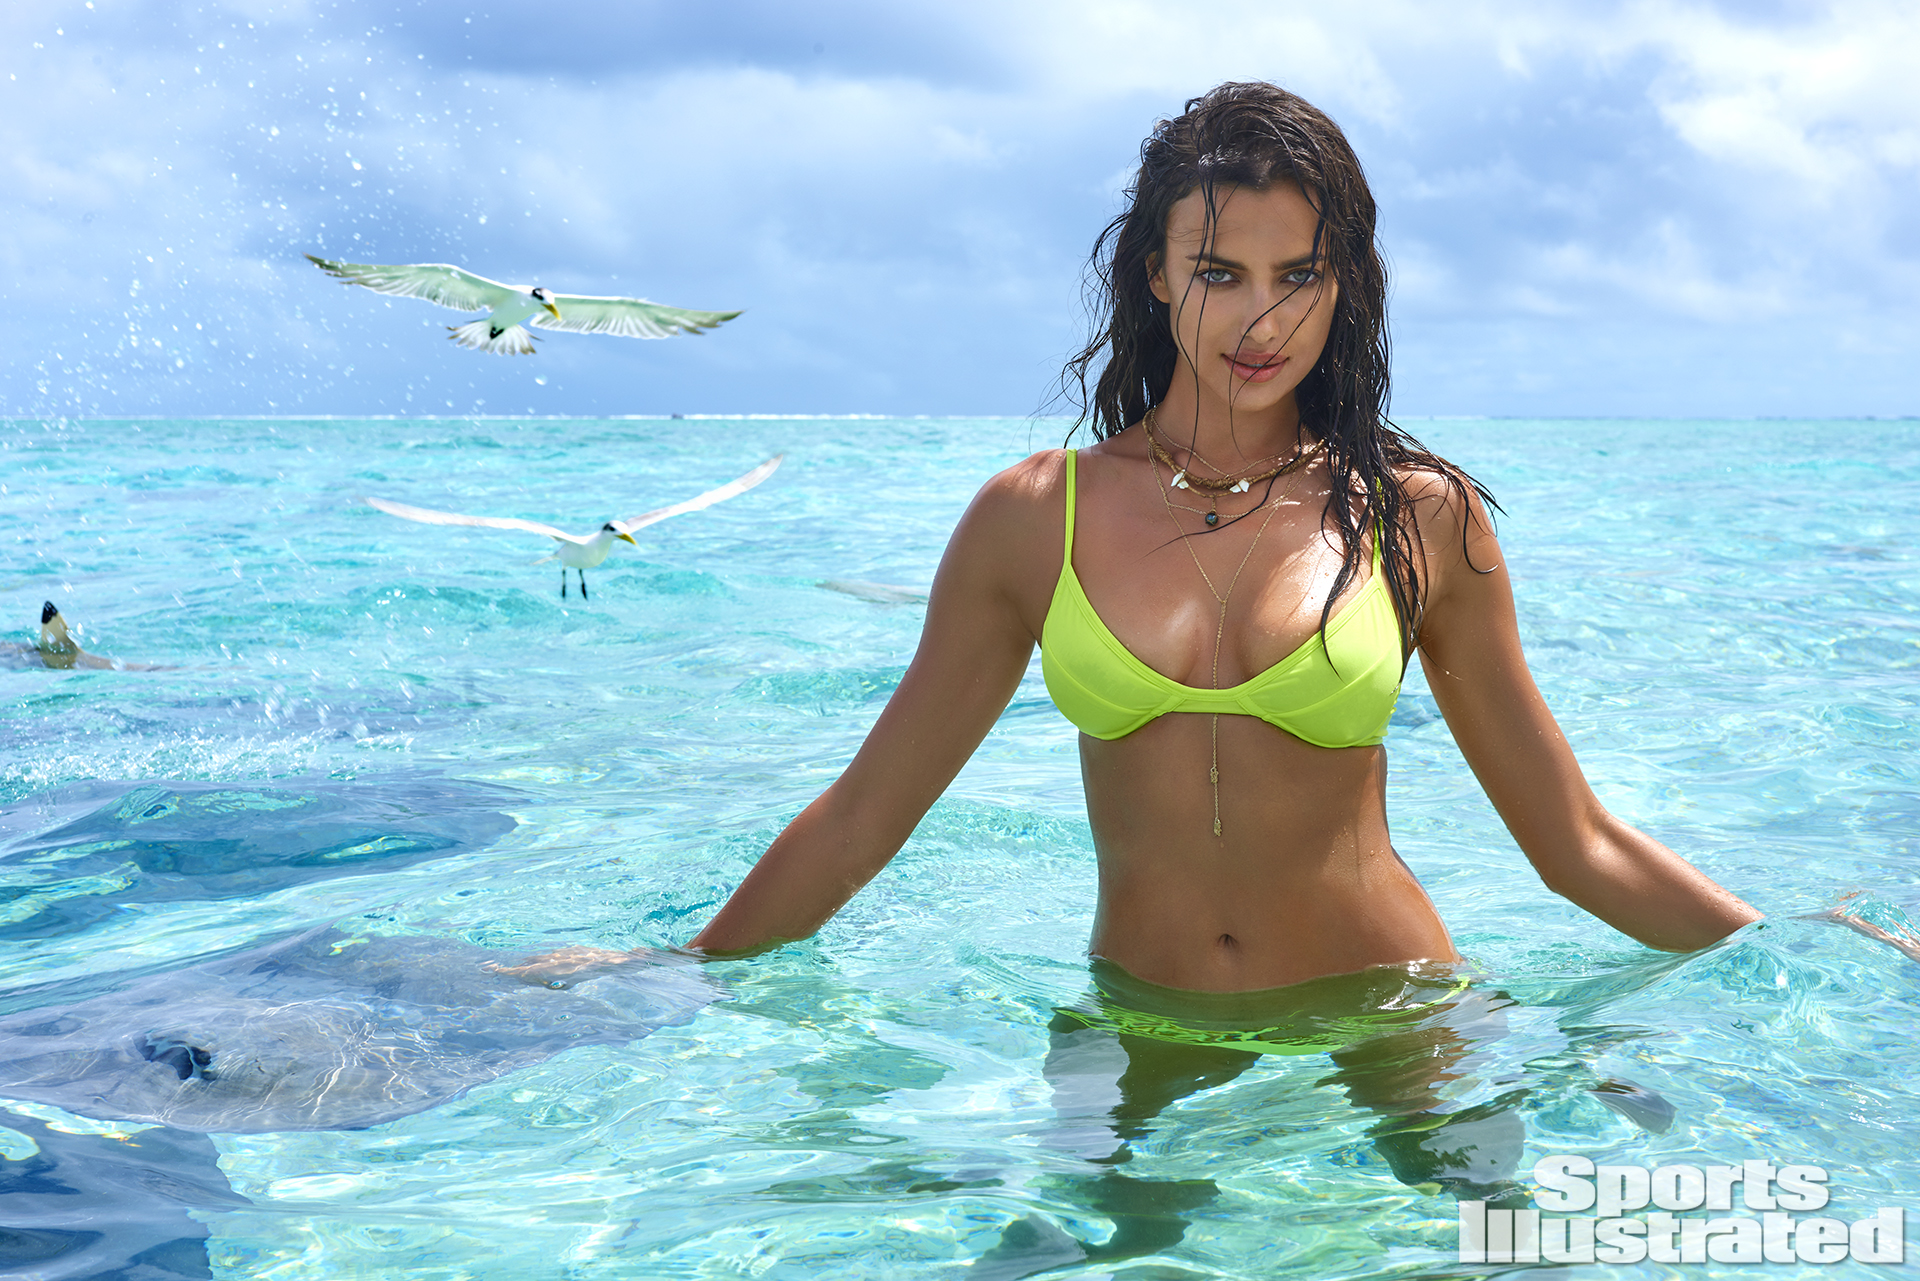 Irina Shayk was photographed by Yu Tsai in The Islands Of Tahiti. Swimsuit by Solkissed.